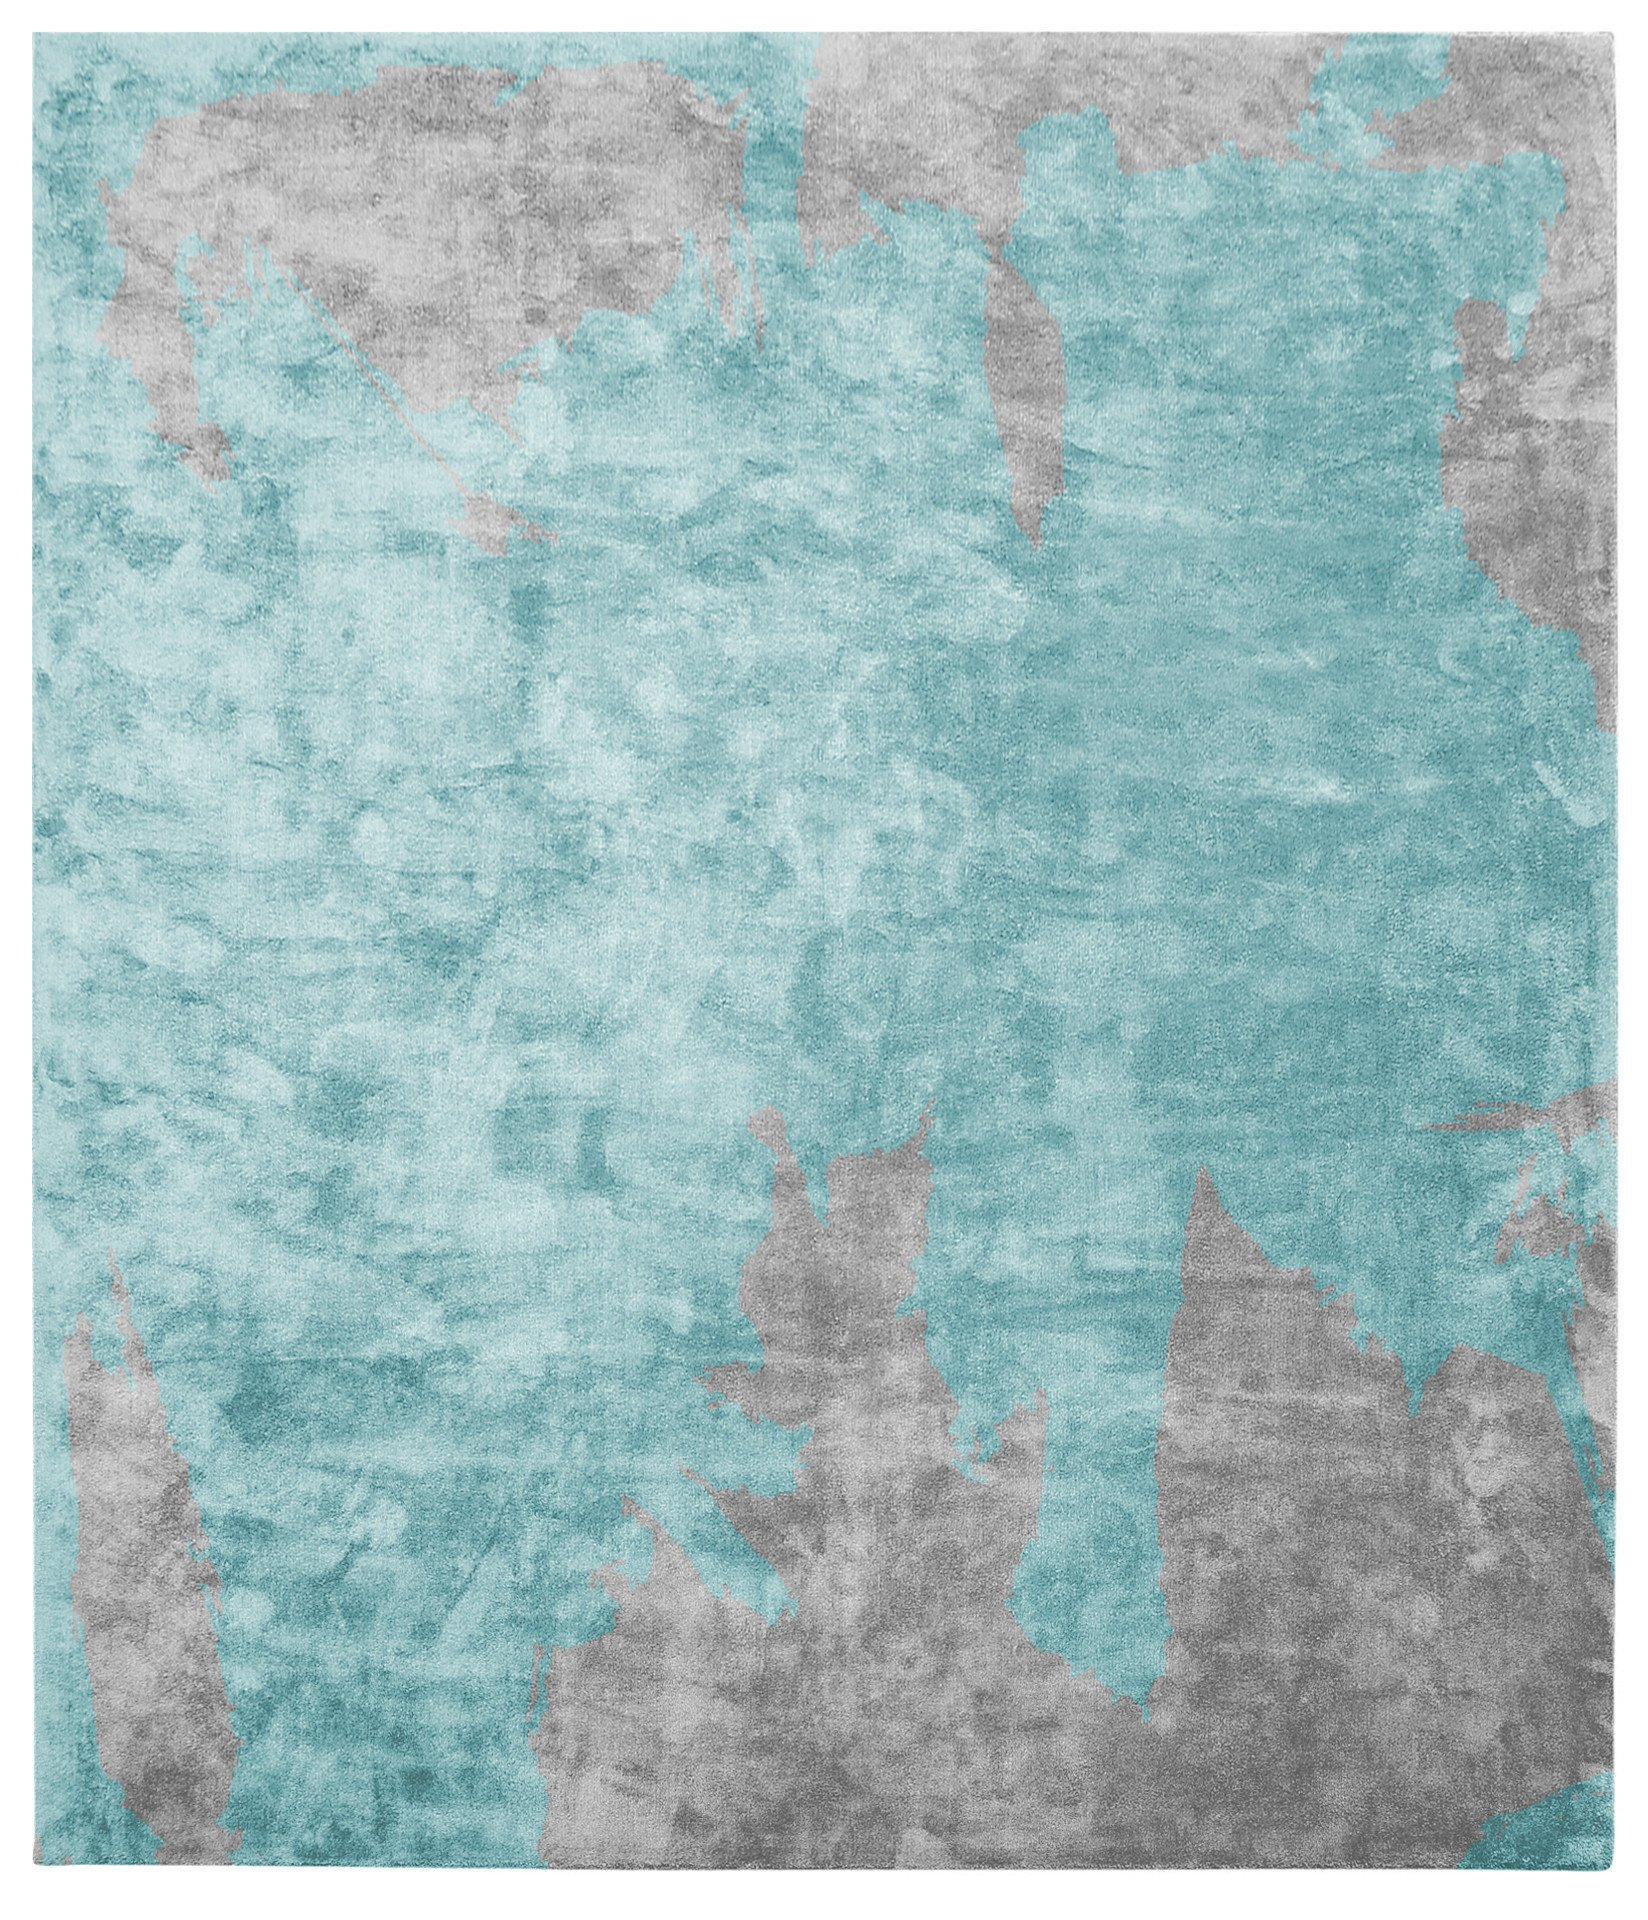 Action Caccia Hand Knotted Rug in Blue design by Second Studio